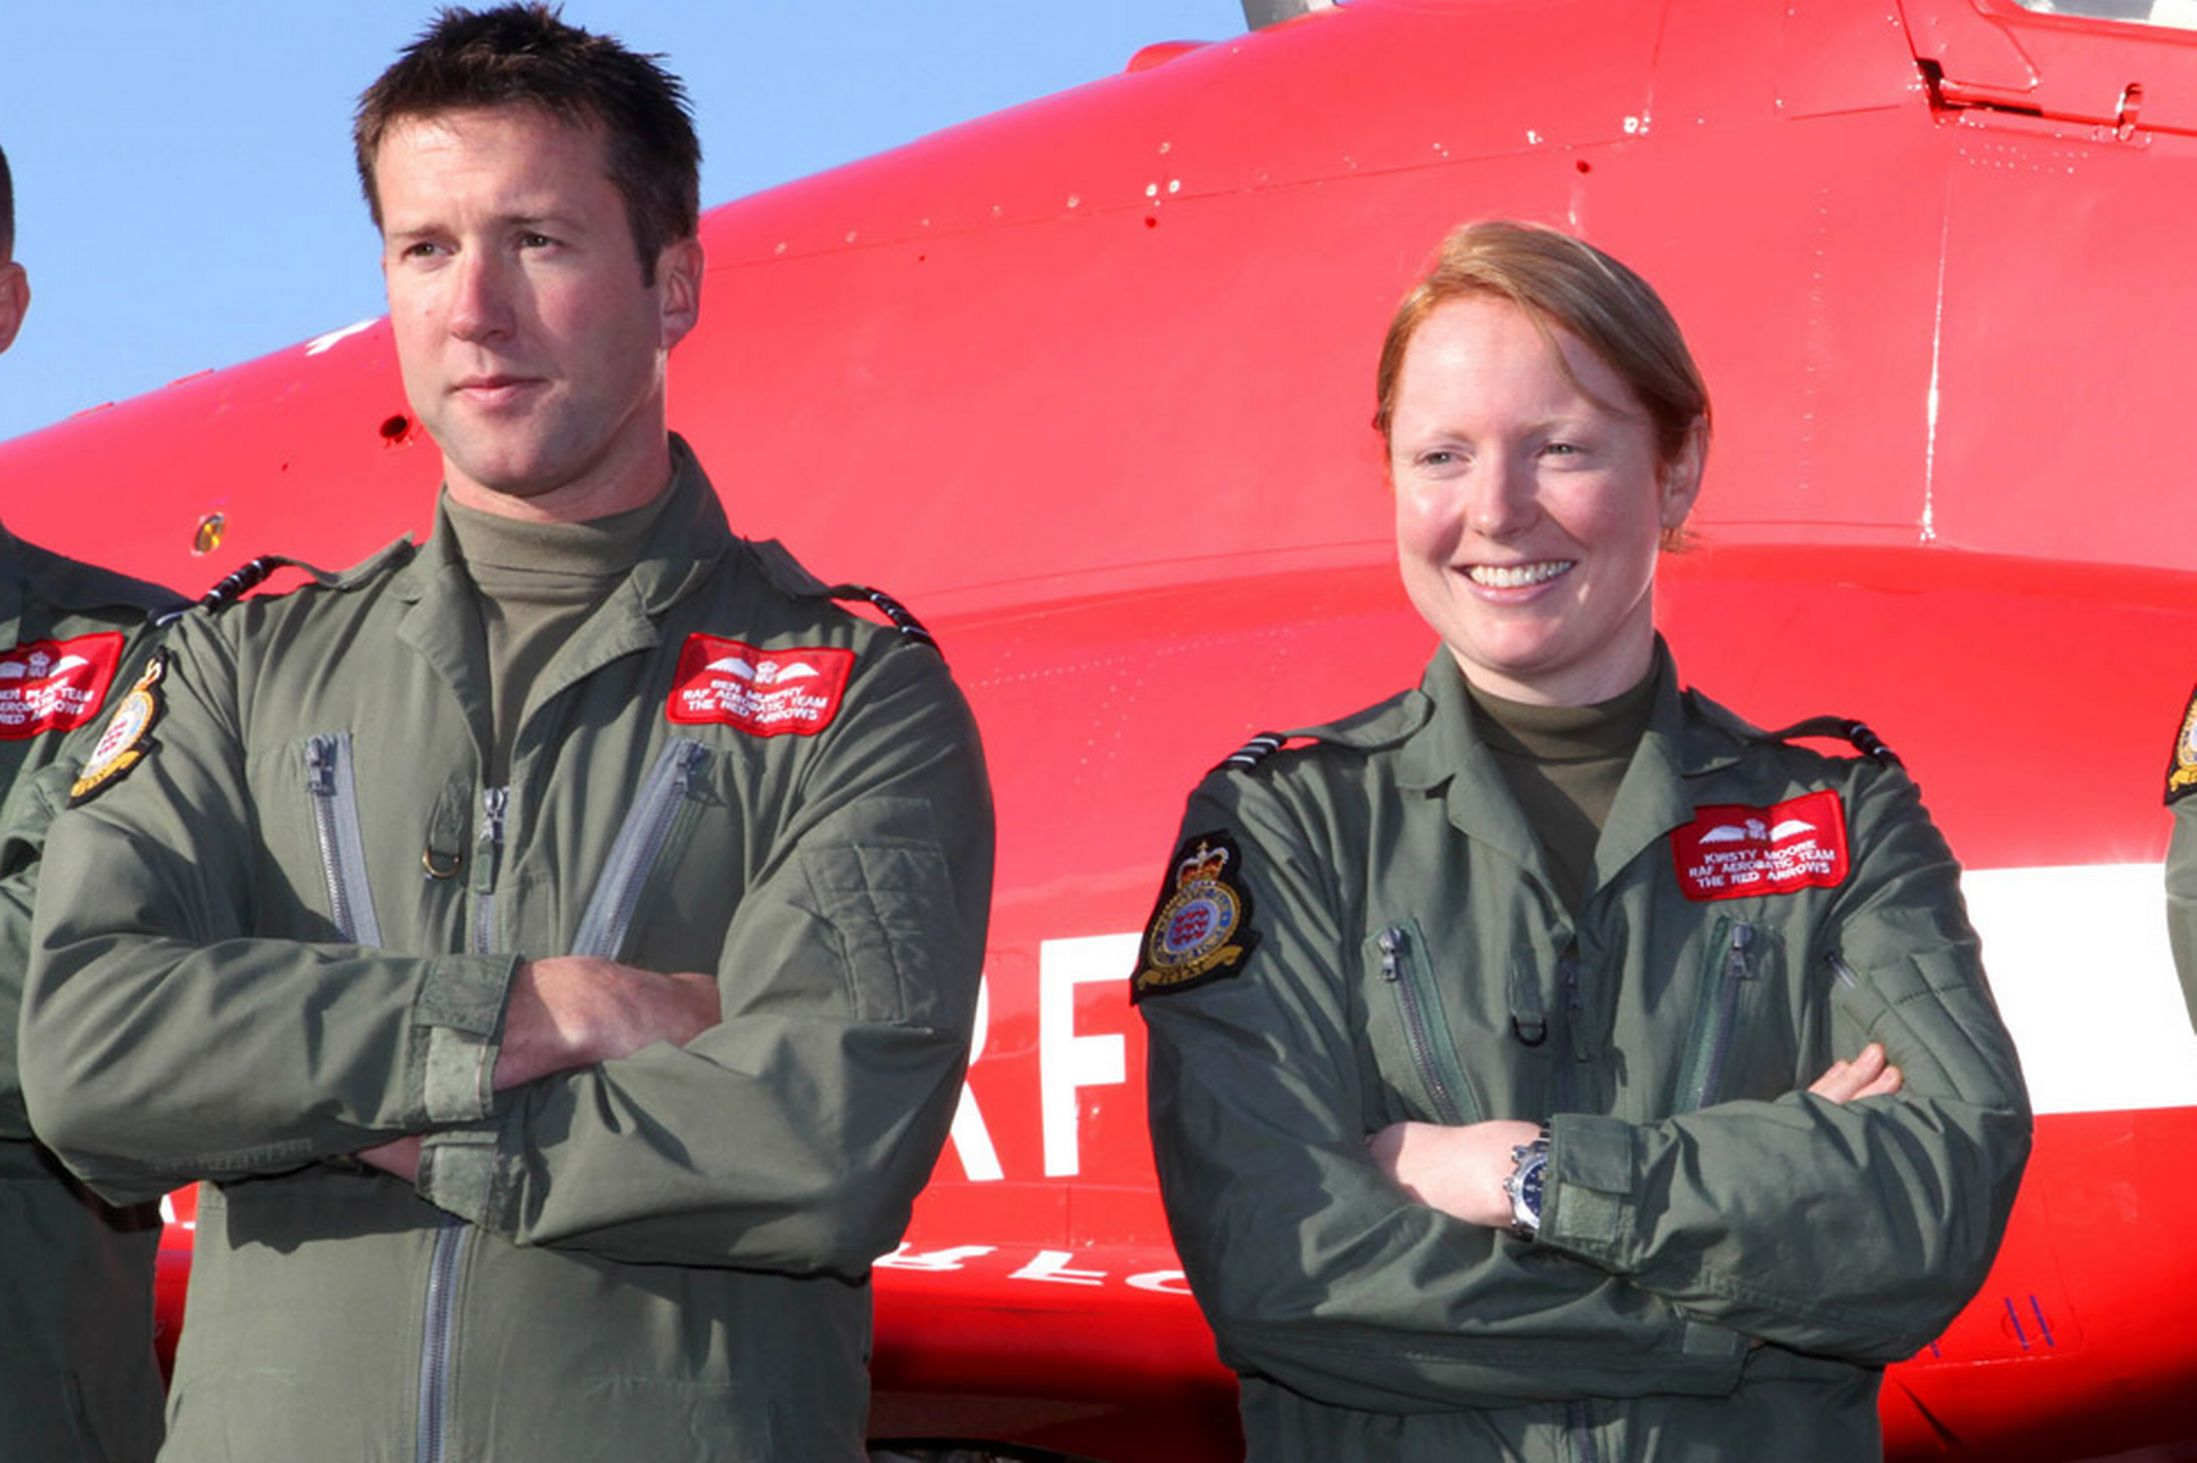 Red Arrow pilots to marry after denying affair to RAF bosses